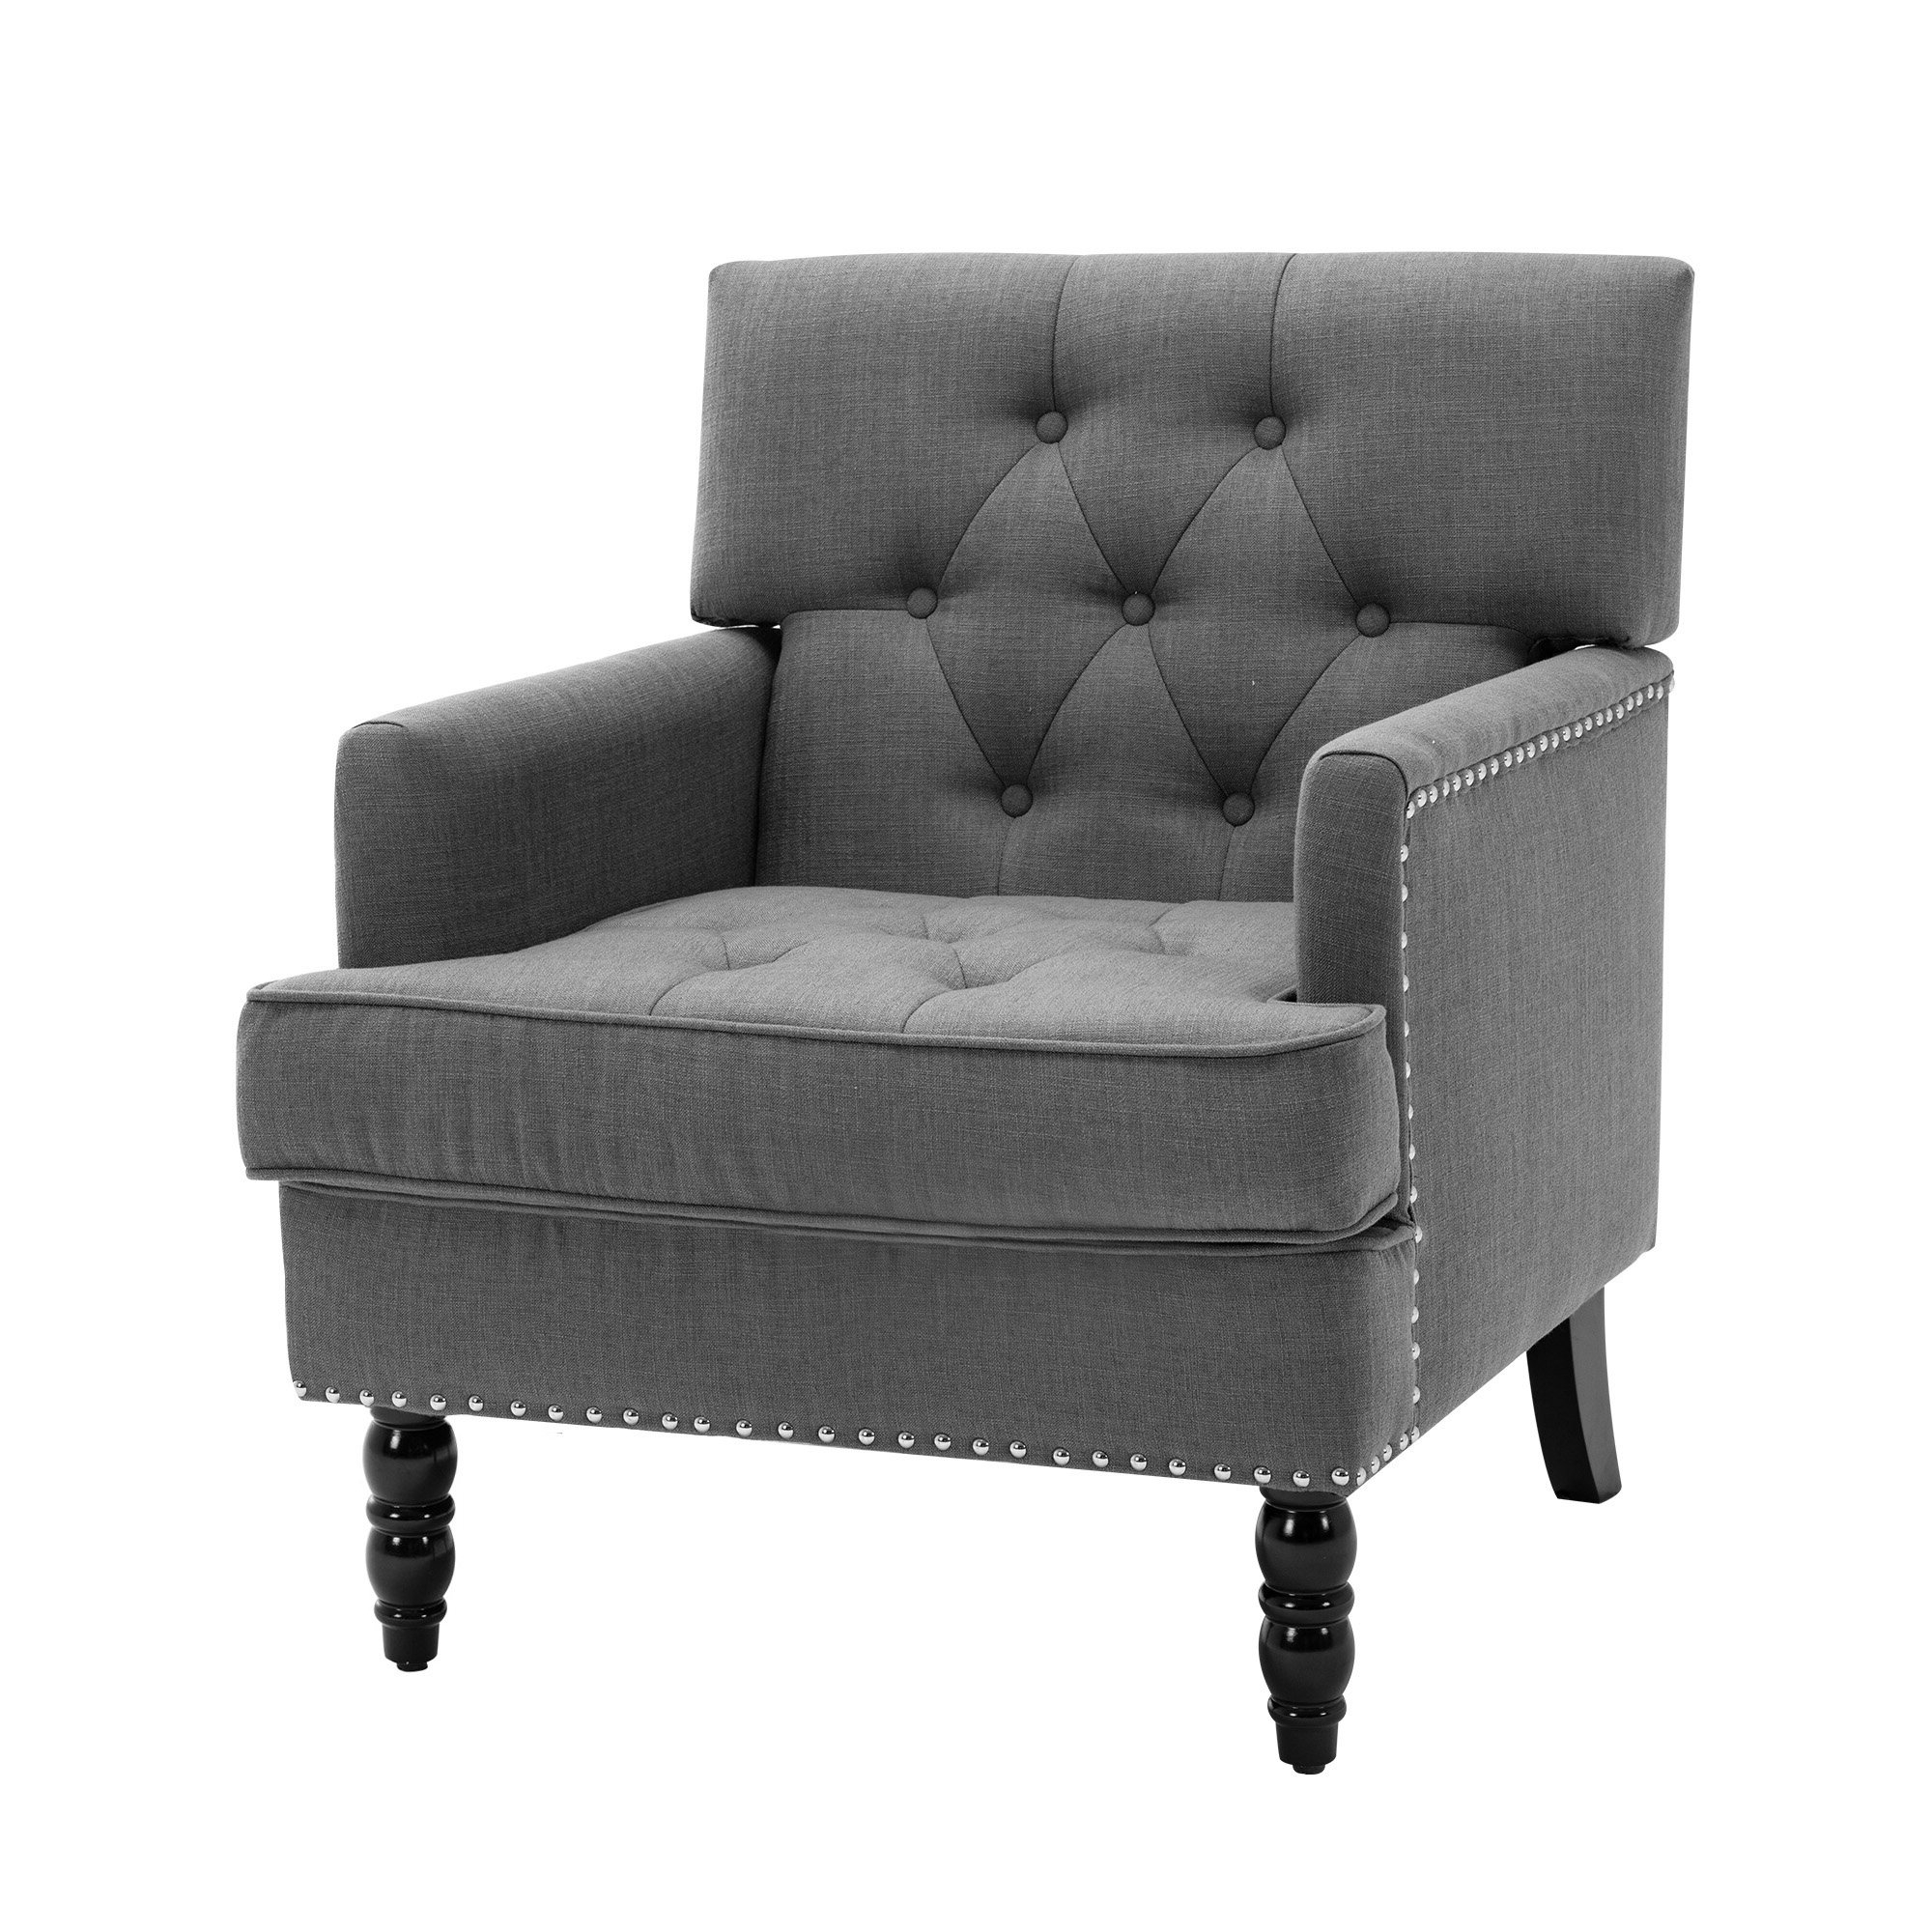 Suki Armchair For Well Known Suki Armchairs (View 12 of 20)